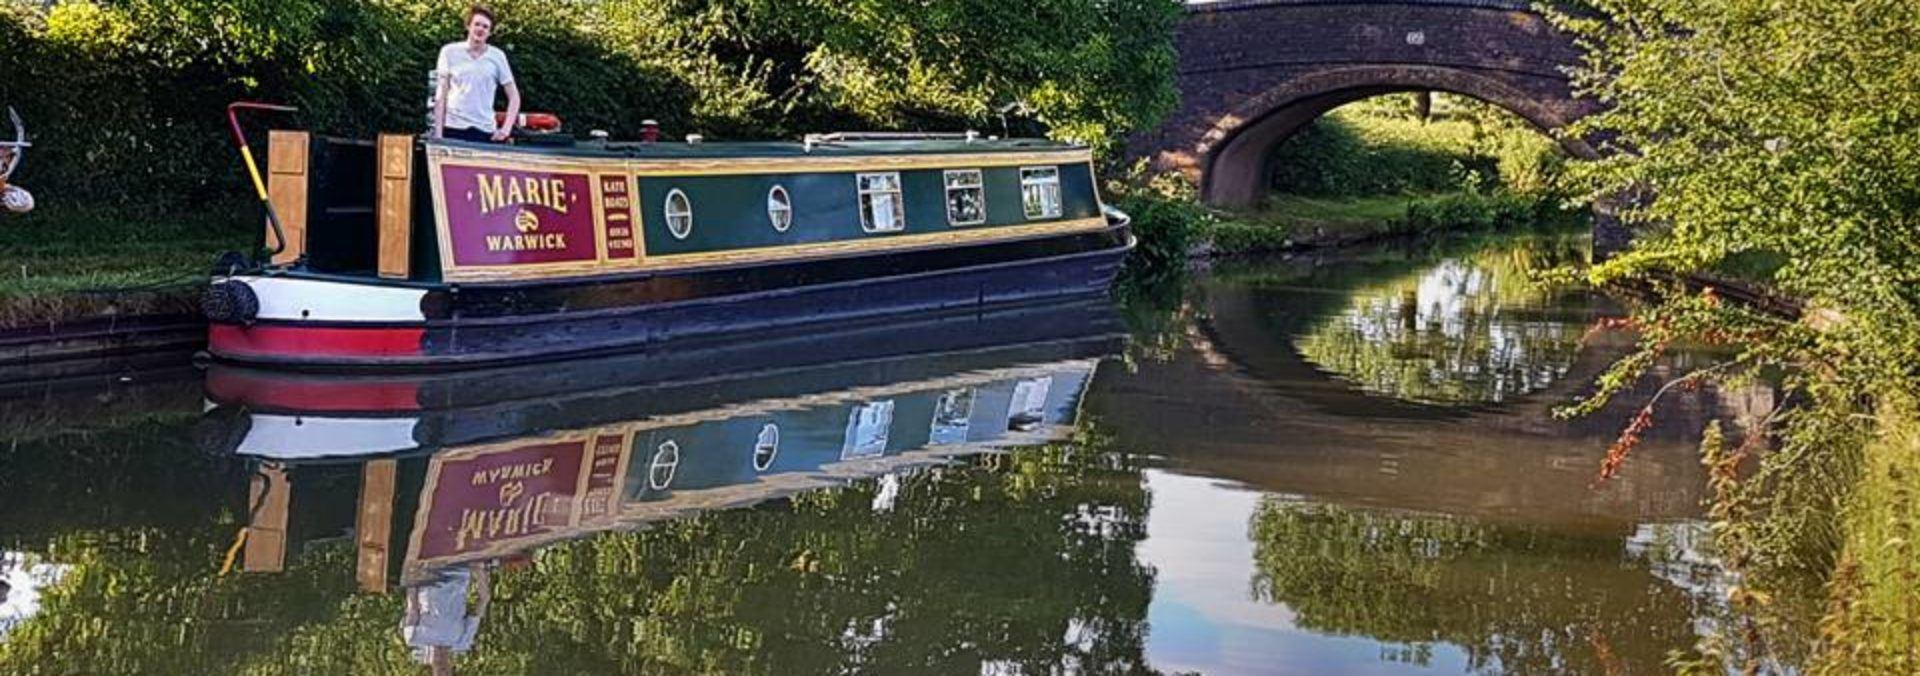 Experience the Magic of a Canal Boat Holiday and hire a narrowboat